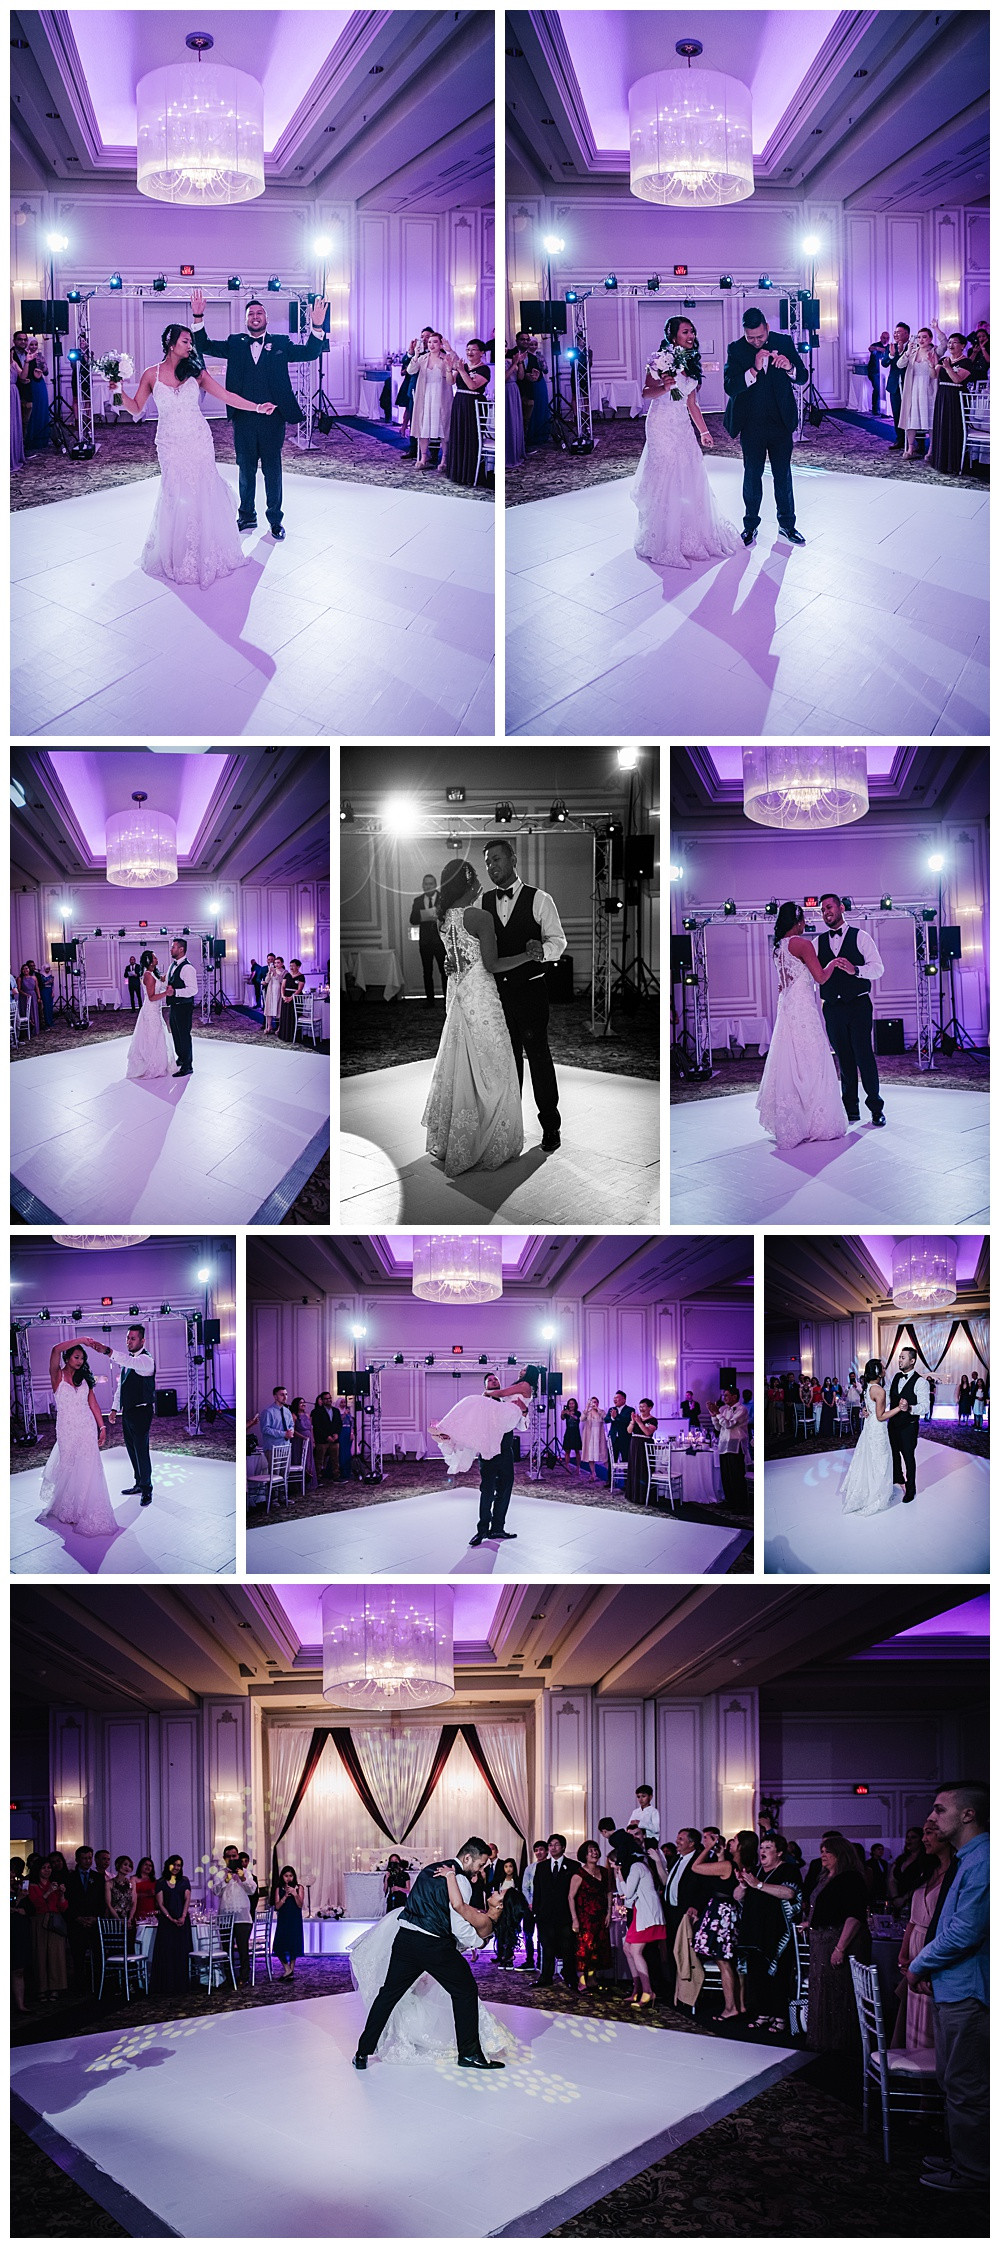 Bride and Groom intro, First Dance, Bride and Groom Dancing